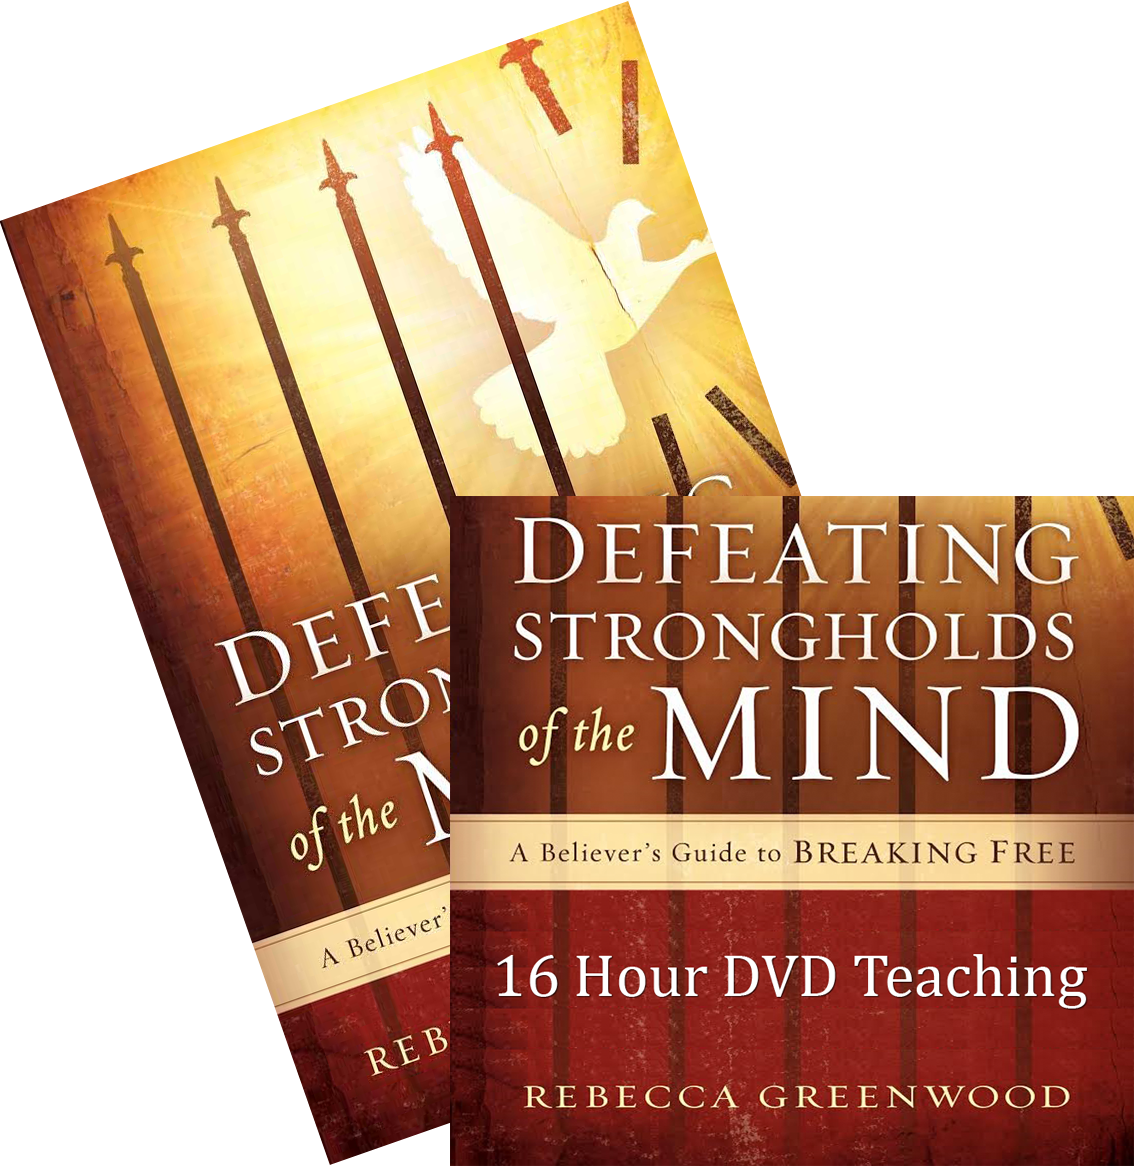 Defeating Strongholds of the Mind DVD/Book Set - Christian